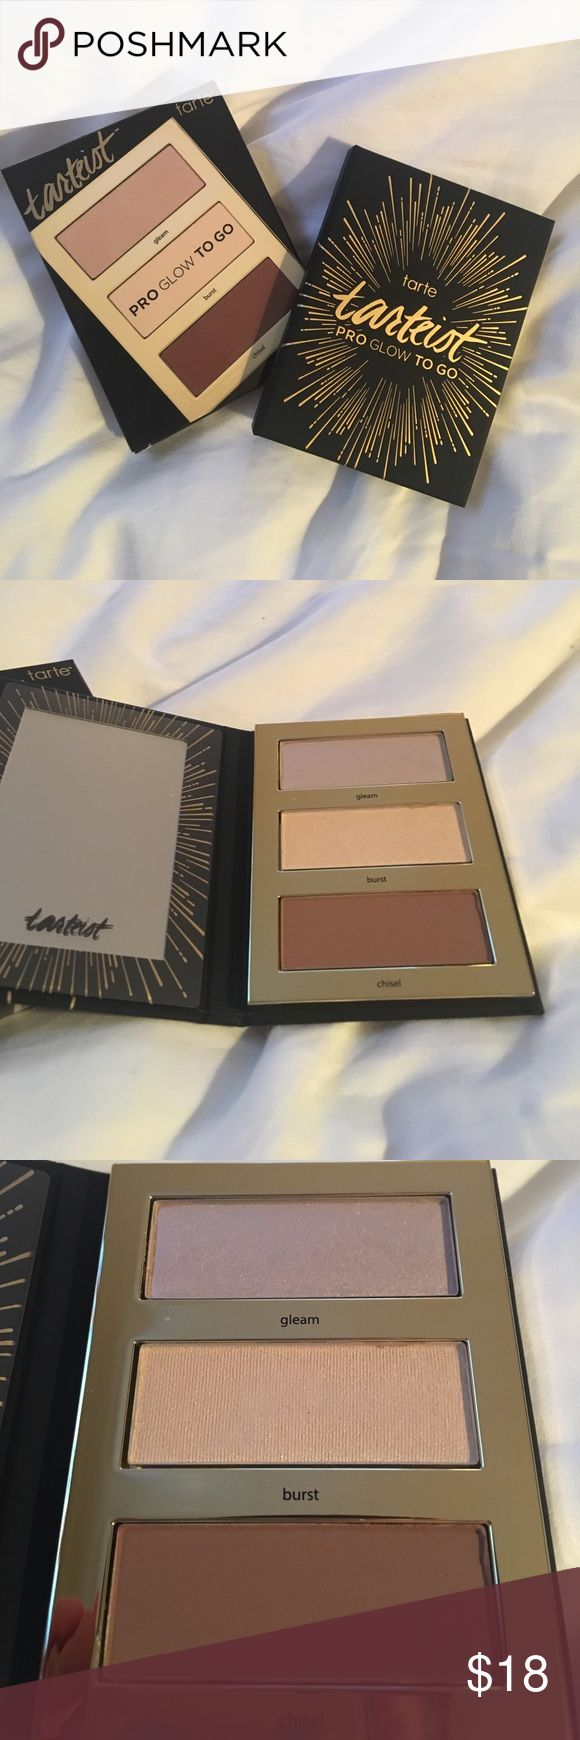 NWTs Tarte Pro Glow Highlight&Contour Palette NWts never used or tested! Tarte cosmetics pro glow to go highlight and Contor pallet when you need to get party ready in a hurry, use this portable mini palette to highlight your face on the go. It includes a pearl and a shimmery send highlighter to illuminate cheekbones and a Mac contour shade to define your features it's the ideal size to Sashing you're bad to touch up with you later. tarte Makeup Luminizer